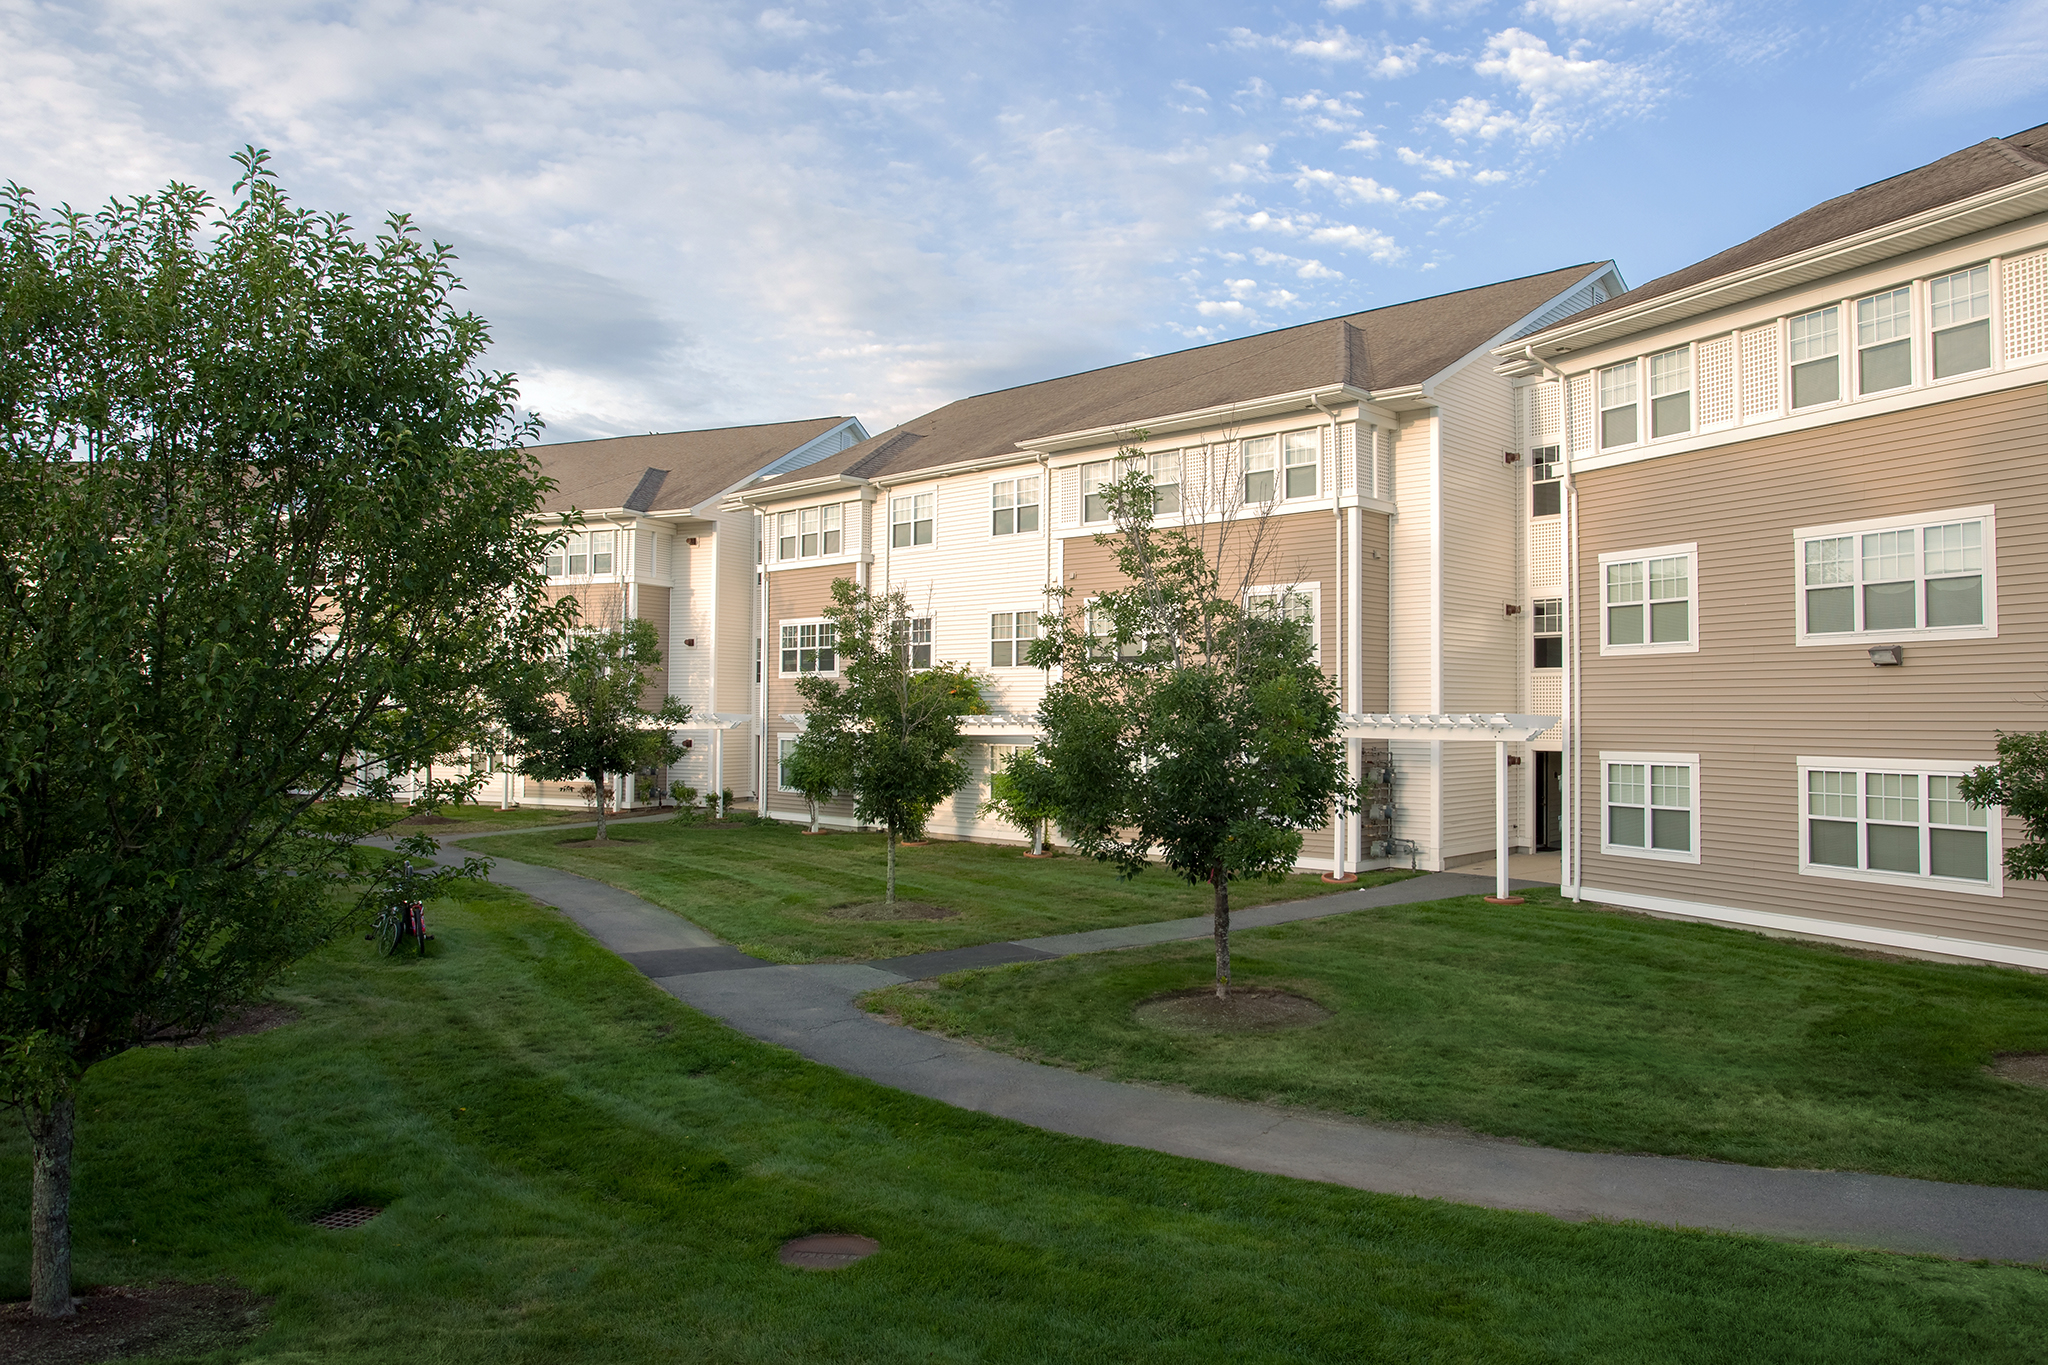 Chestnut Farm Apartments image 1